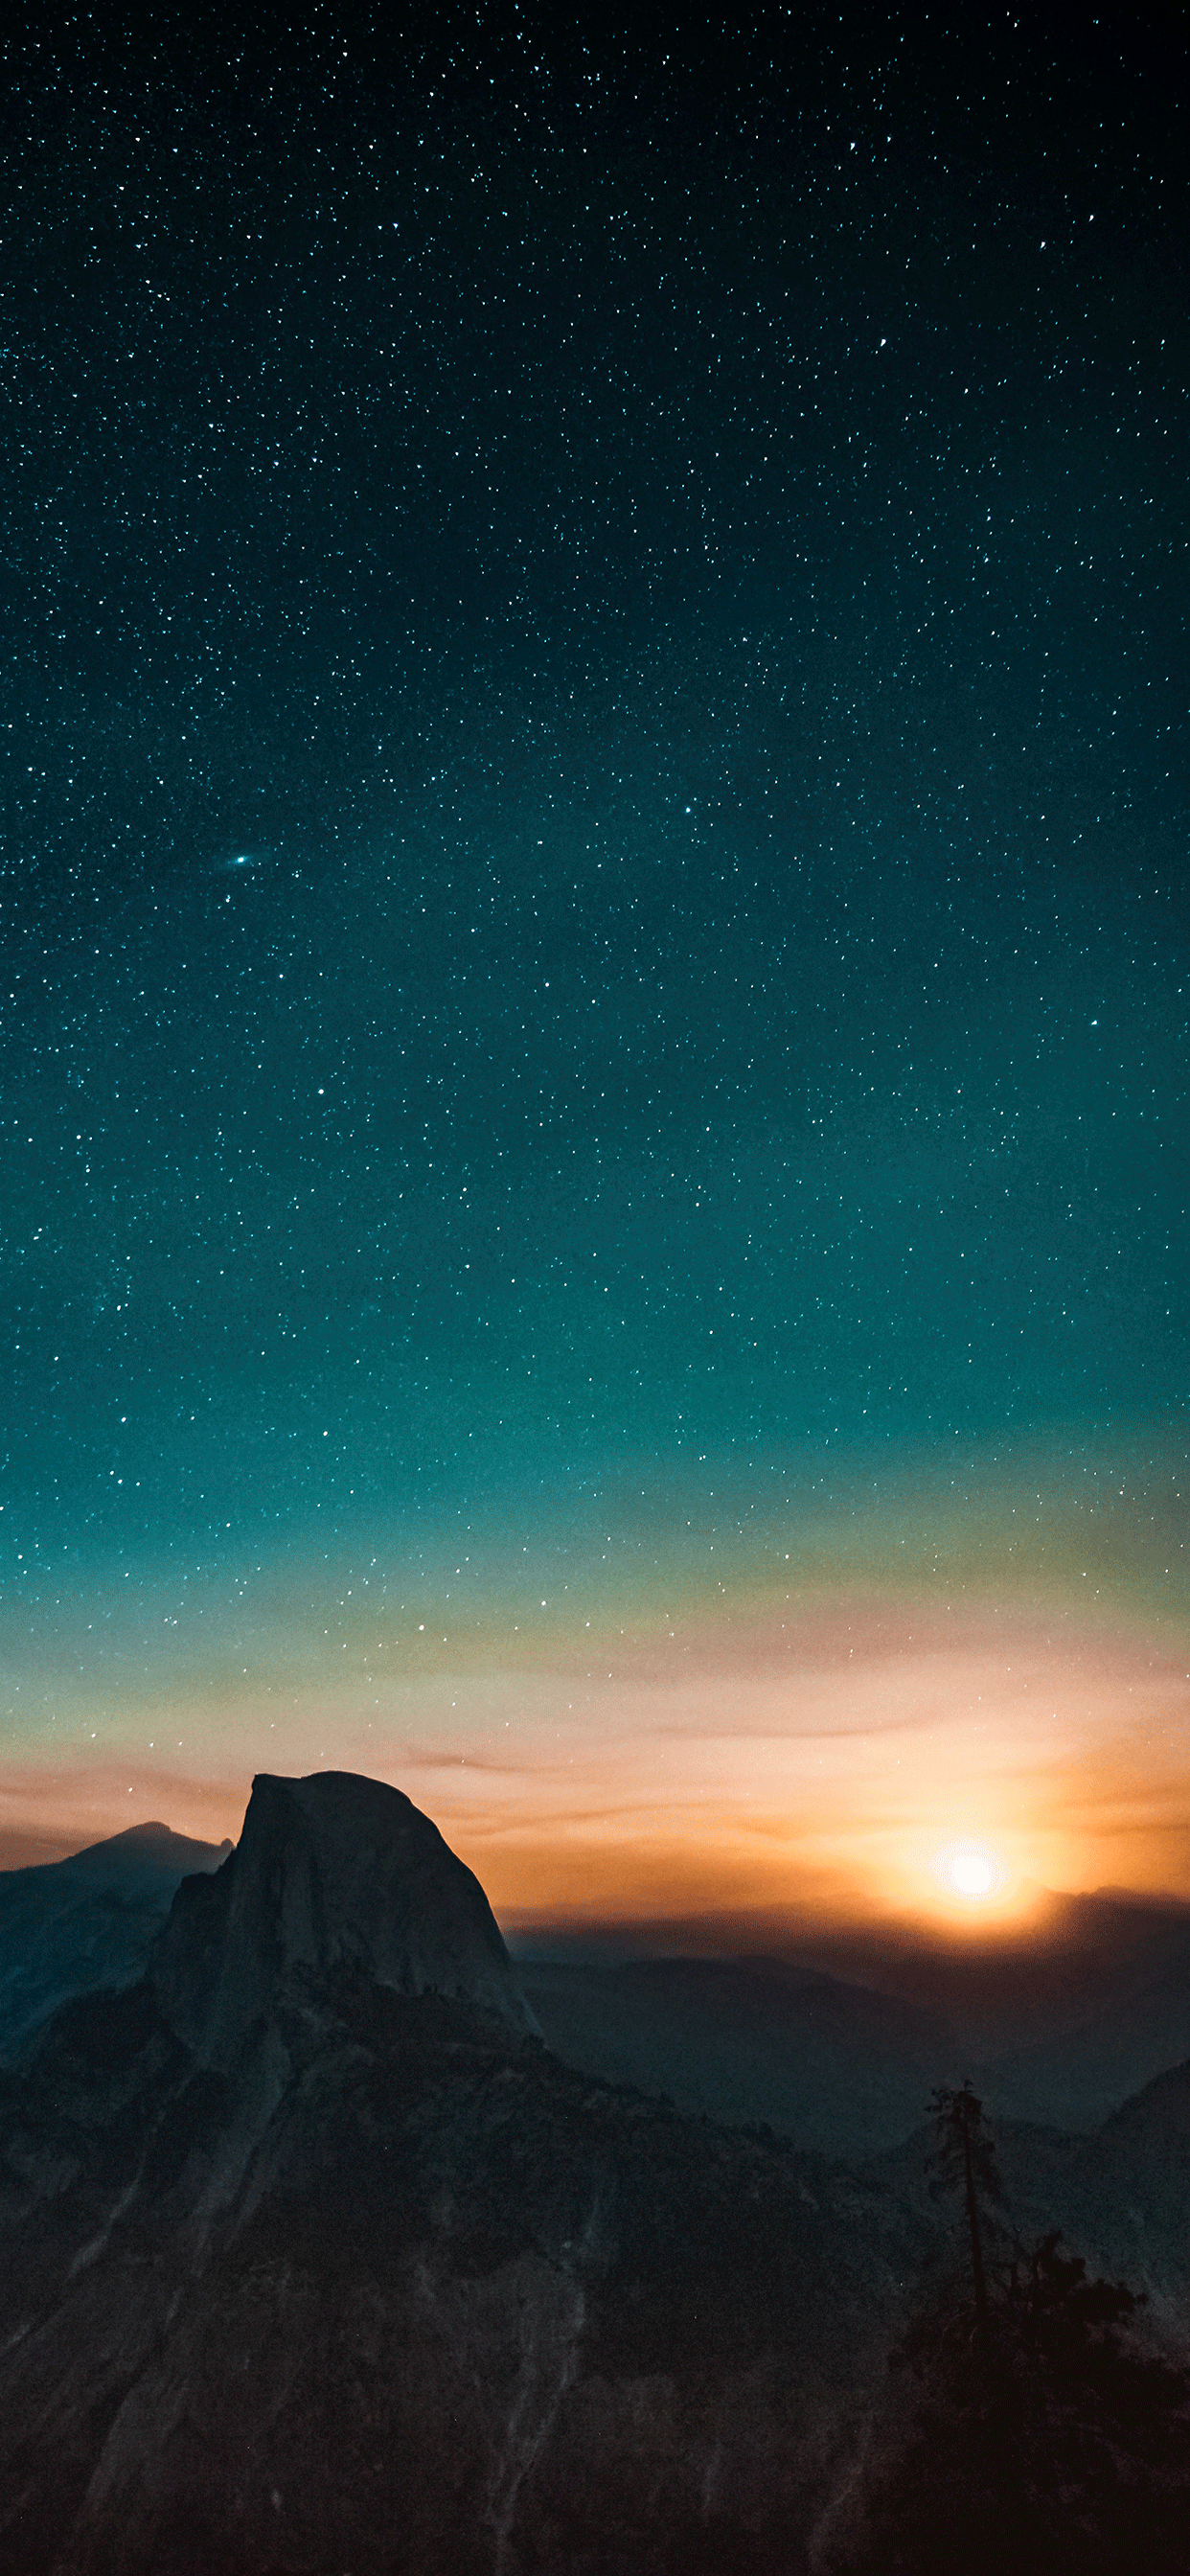 iPhone wallpapers stars yosemite valley Stars